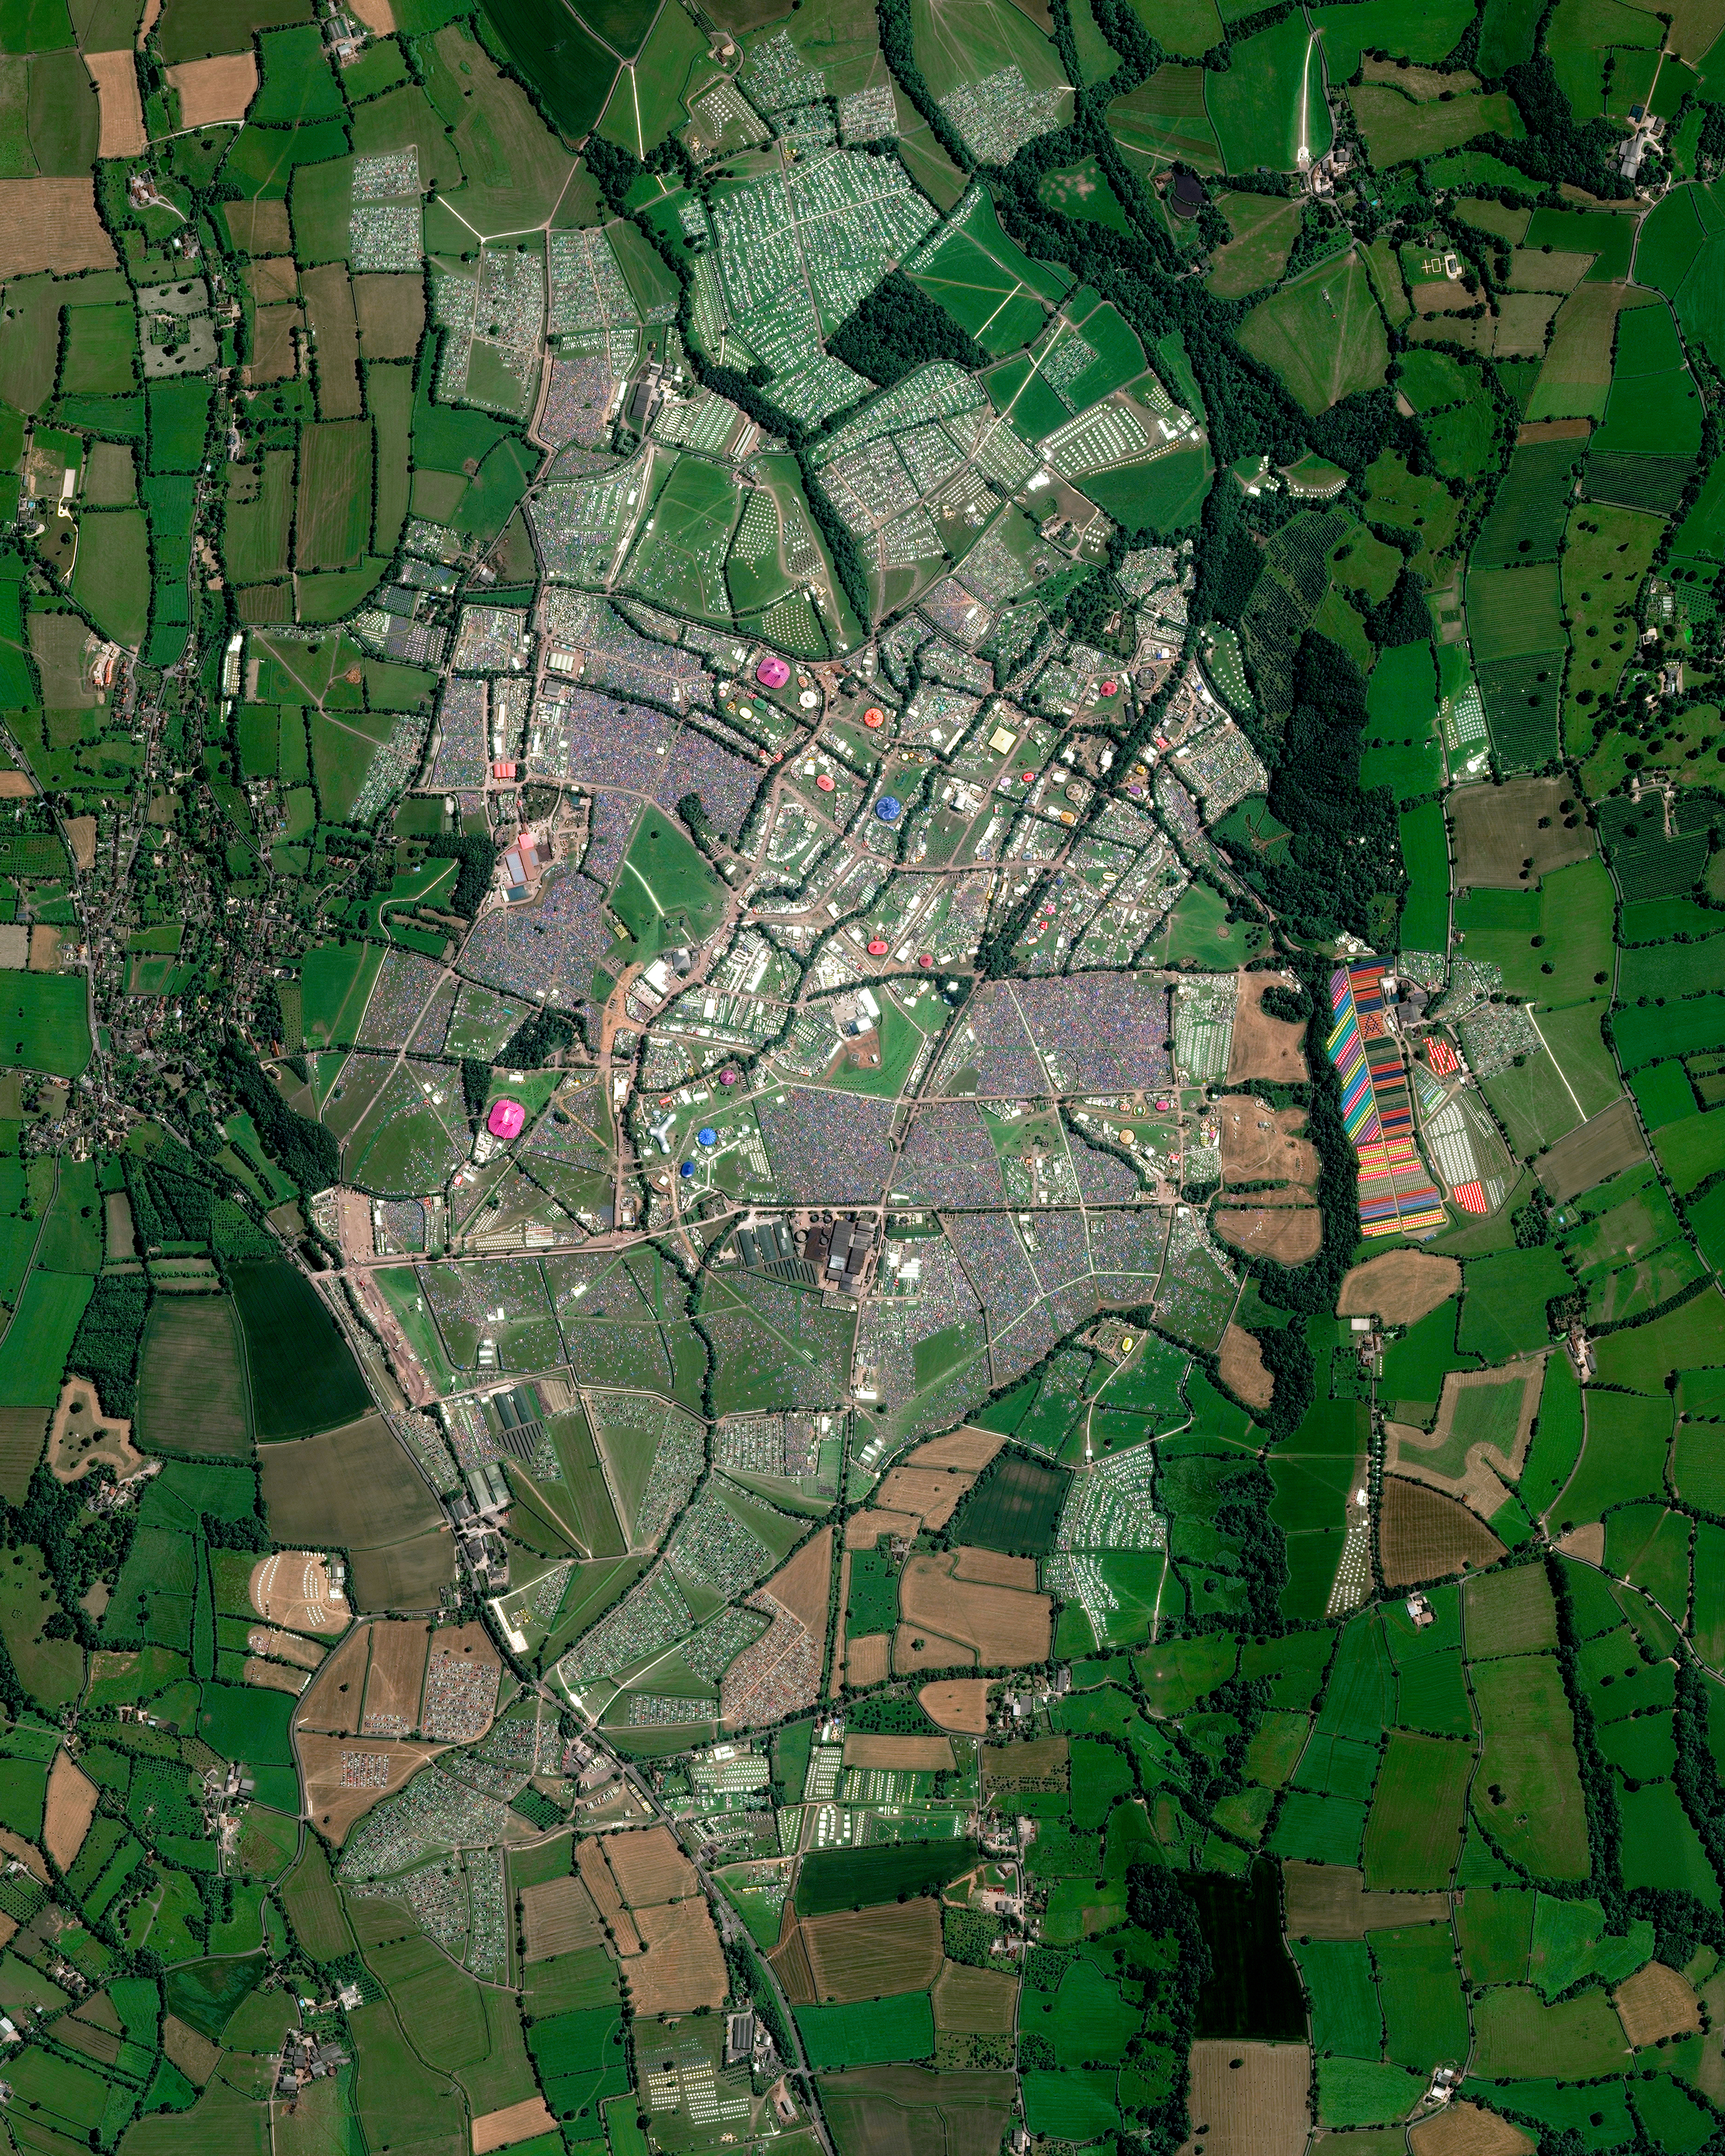 This Overview captures the 2017 Glastonbury Festival in Pilton, England. The annual, five-day music event was attended by more than 135,000 people. Concert-goers are provided a campsite at the venue but must bring their own tents — which vividly dot the landscape in this Overview. The population of Pilton on the other 360 days of the year is 998.  51.152500°, -2.589722°  Source imagery: Maxar Technologies